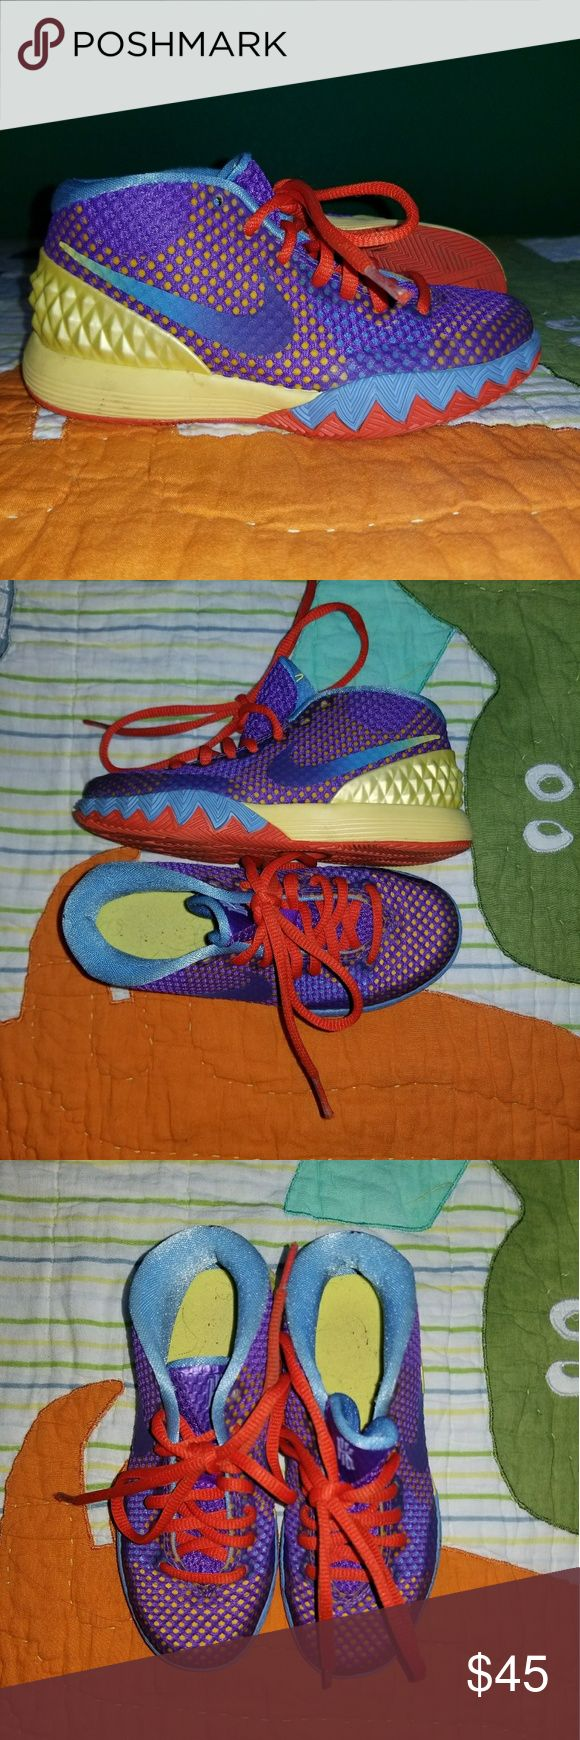 Nike Kyrie Irving 1 Nike basketball shoes. Youth size. Gently worn. Amazingg condition! Nike Shoes Sneakers